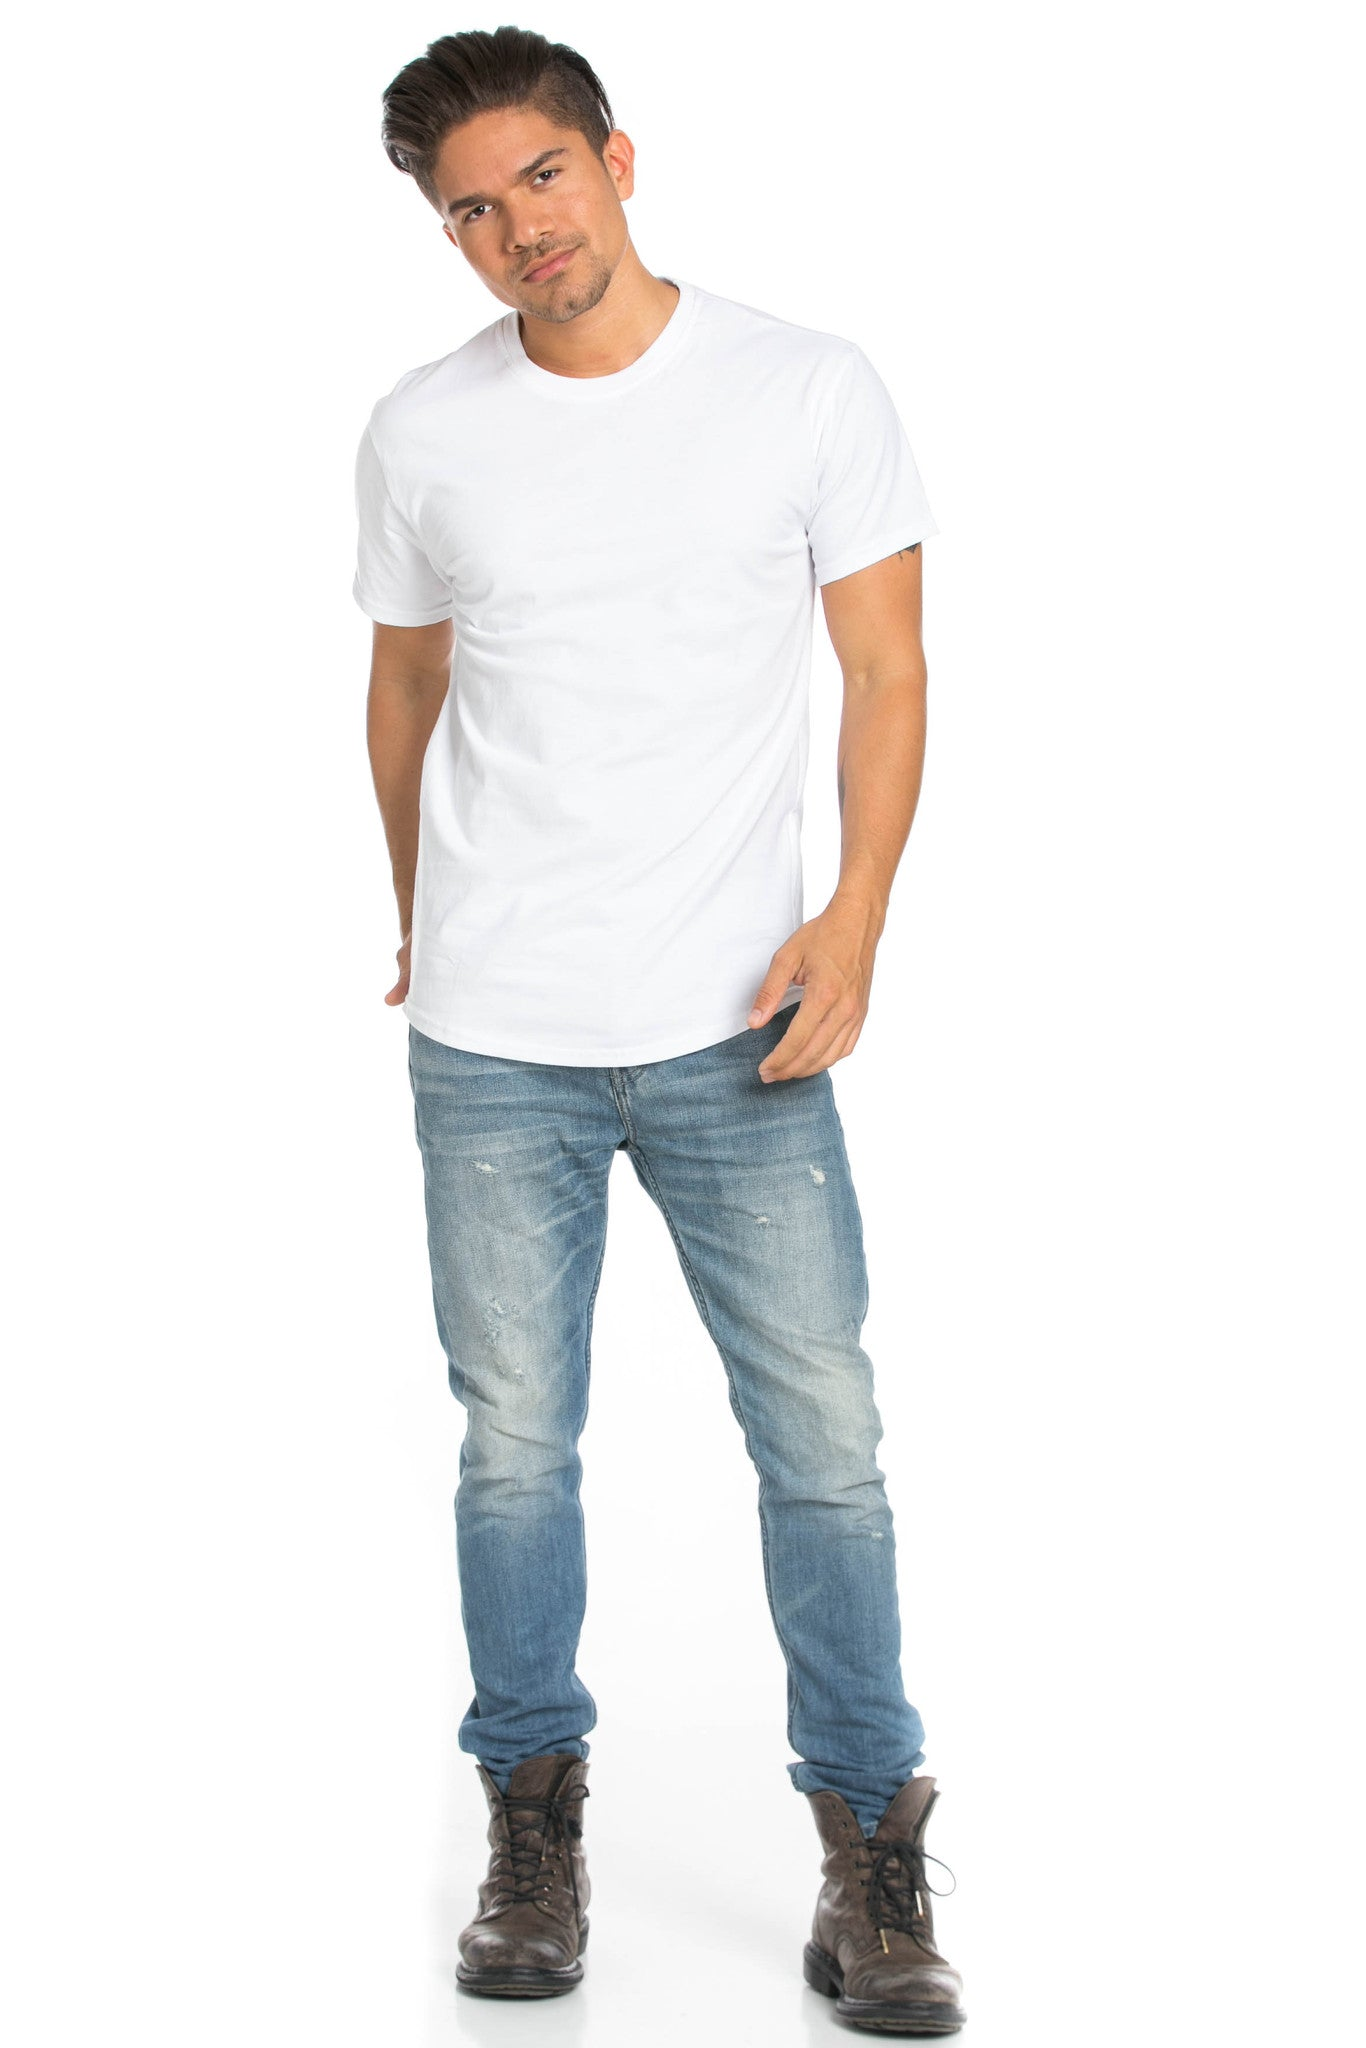 Men's Basic Zipper White T-Shirt - Tops - My Yuccie - 8